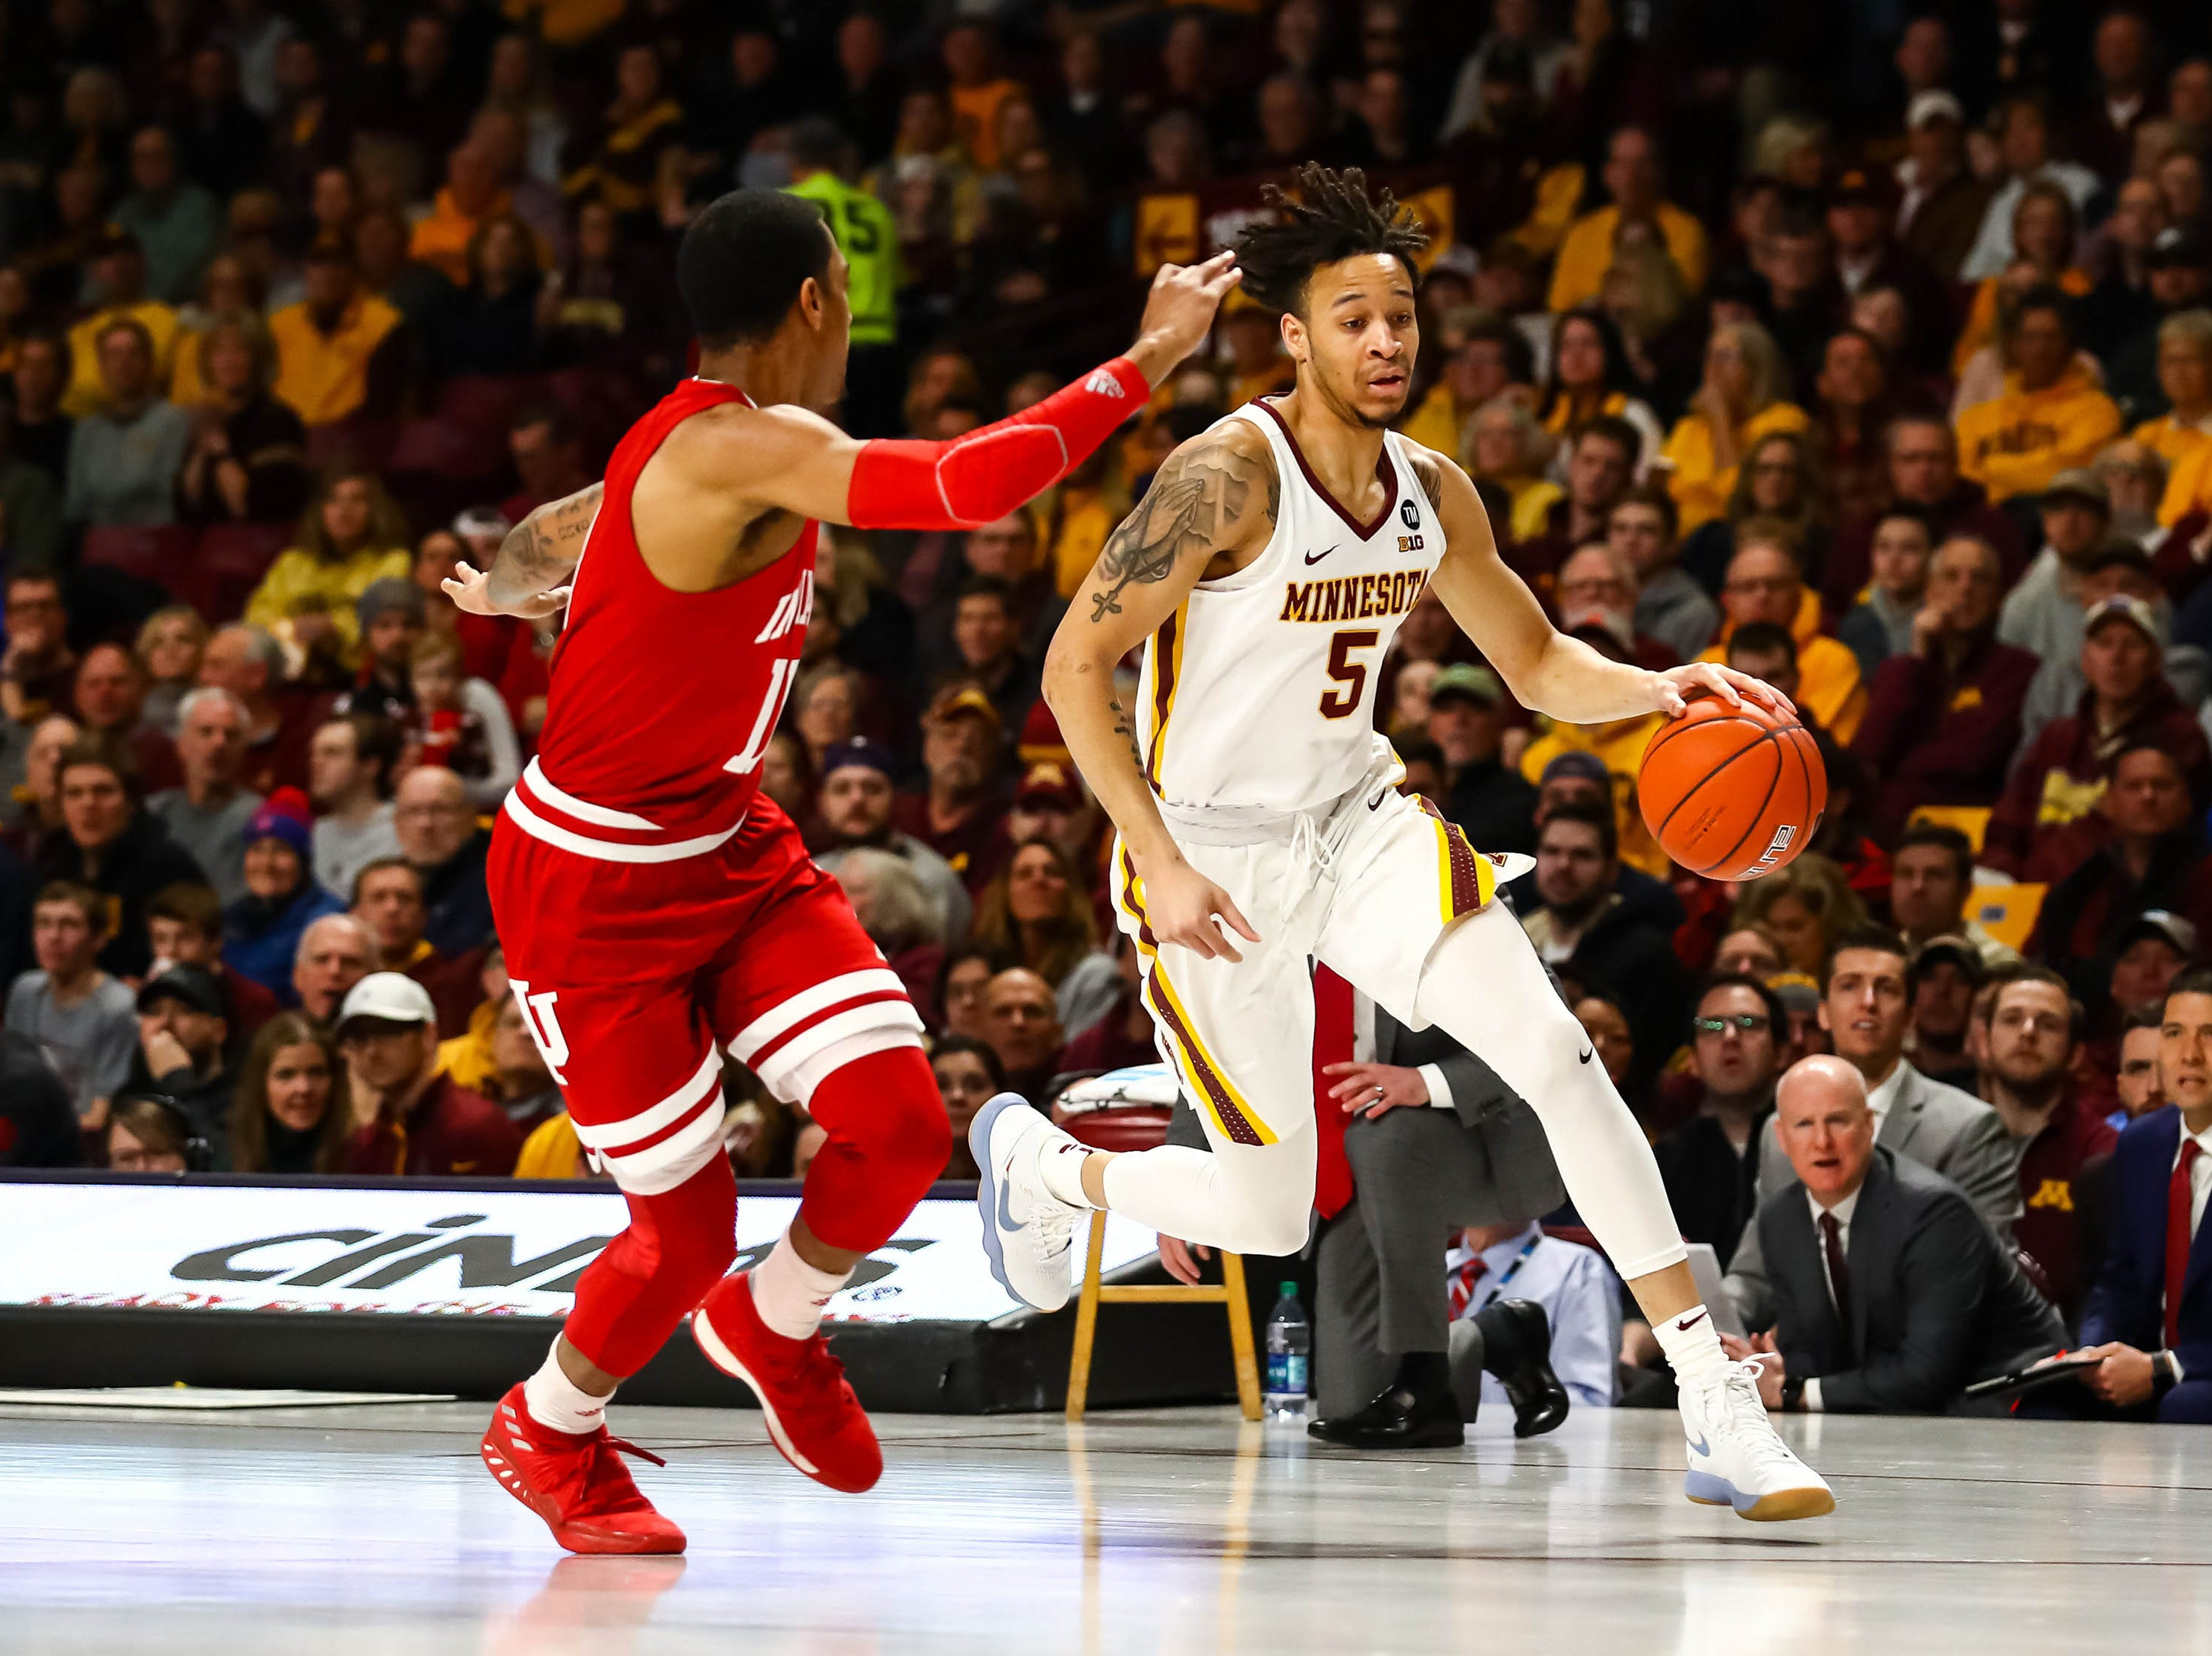 Minnesota Golden Gophers guard Amir Coffey (5) dribbles the ball while Indiana Hoosiers guard Devonte Green (11) defends in the first half at Williams Arena.